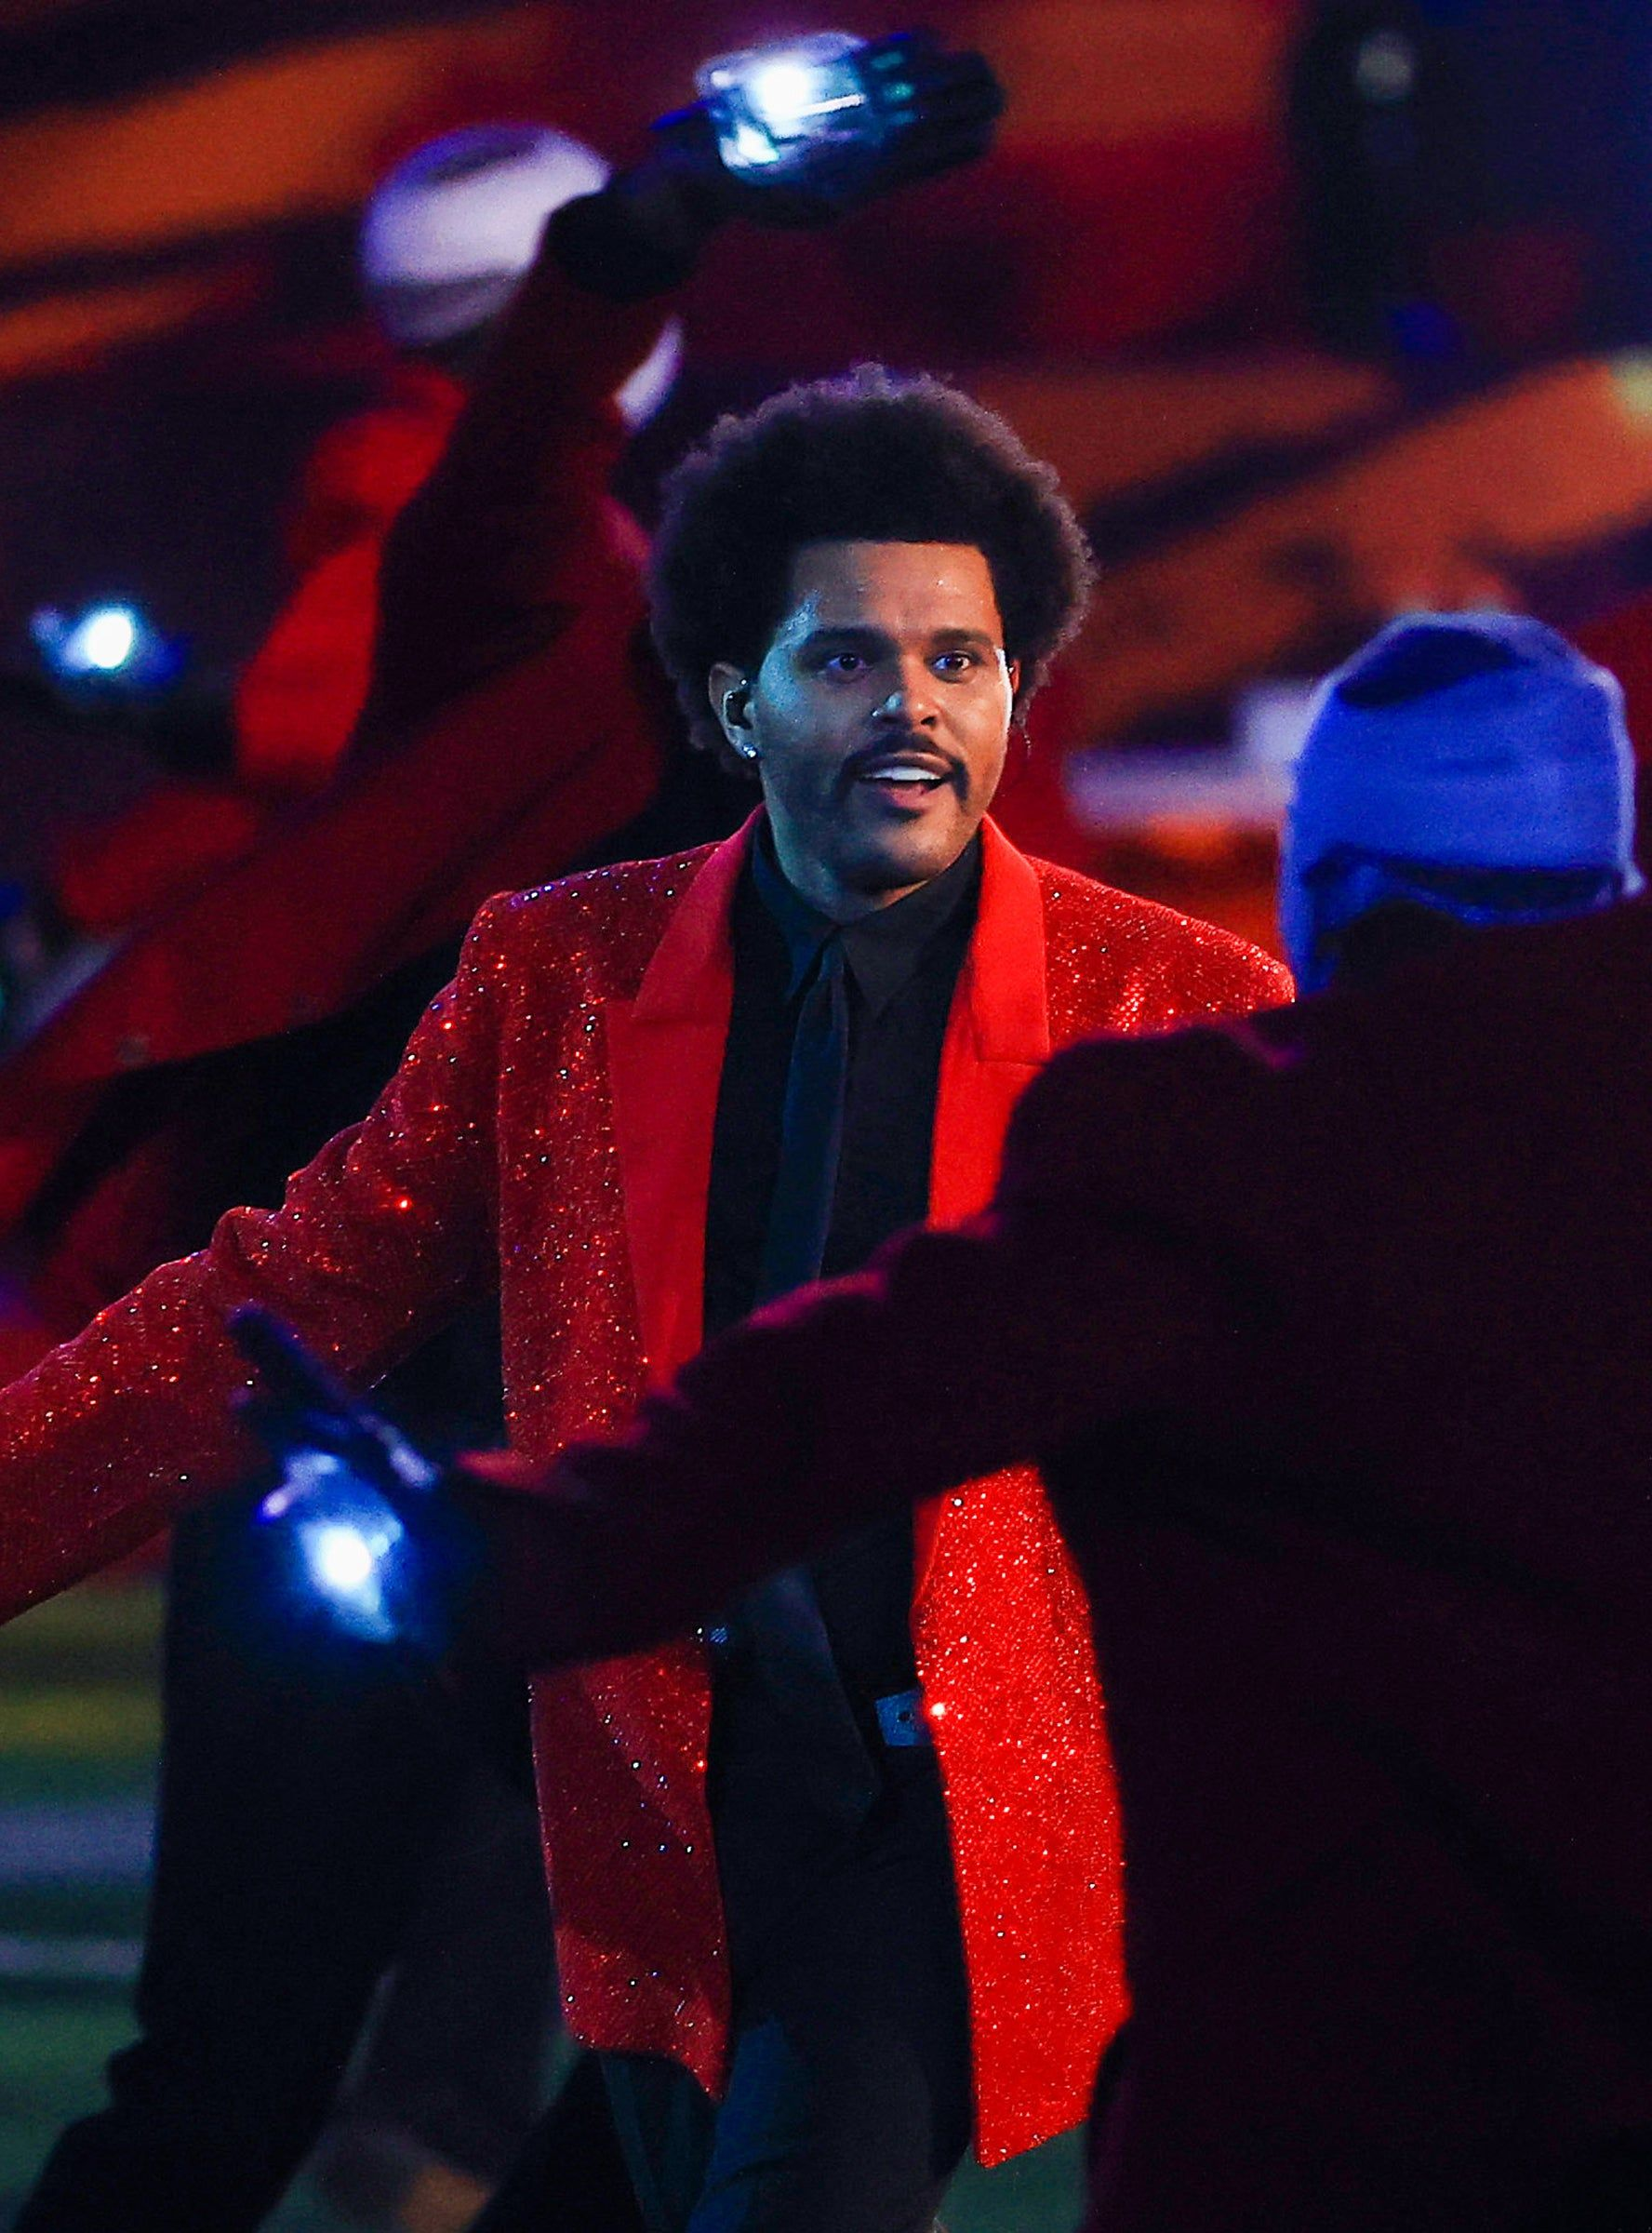 These Memes Of The Weeknd S Halftime Show Actually Won The Super Bowl In 2021 The Weeknd Halftime Show Super Bowl Winners